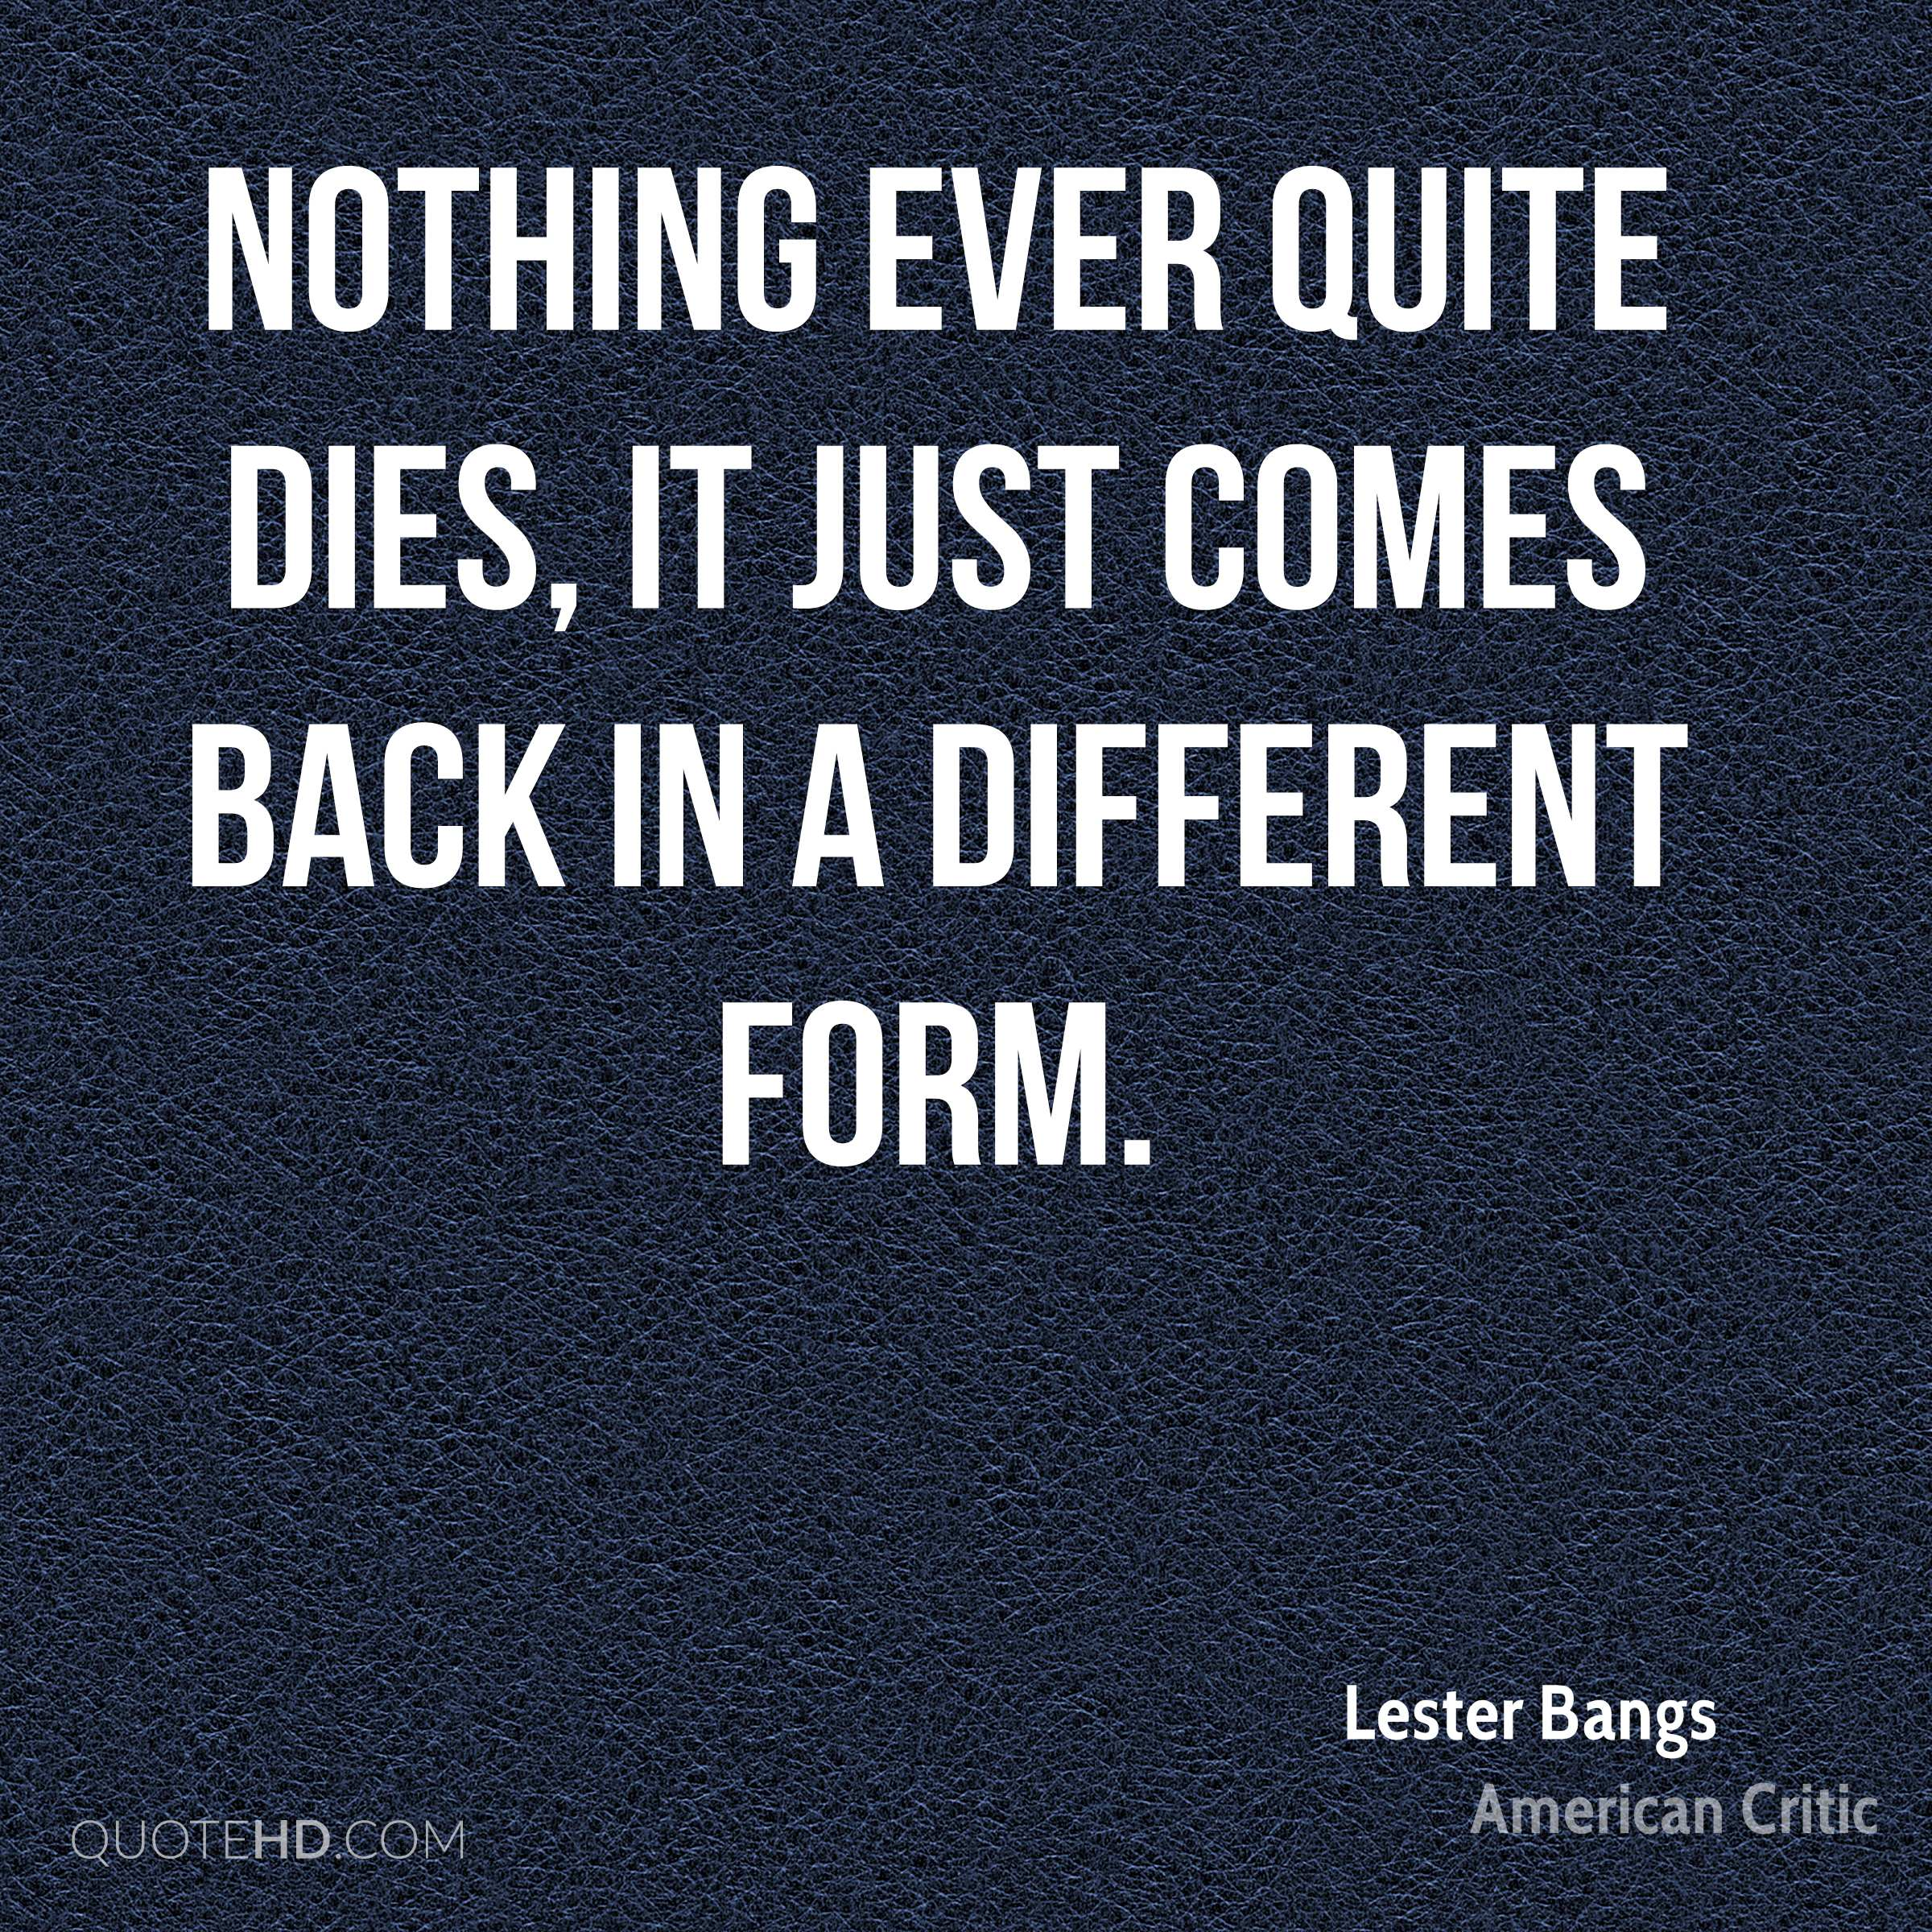 Nothing ever quite dies, it just comes back in a different form.